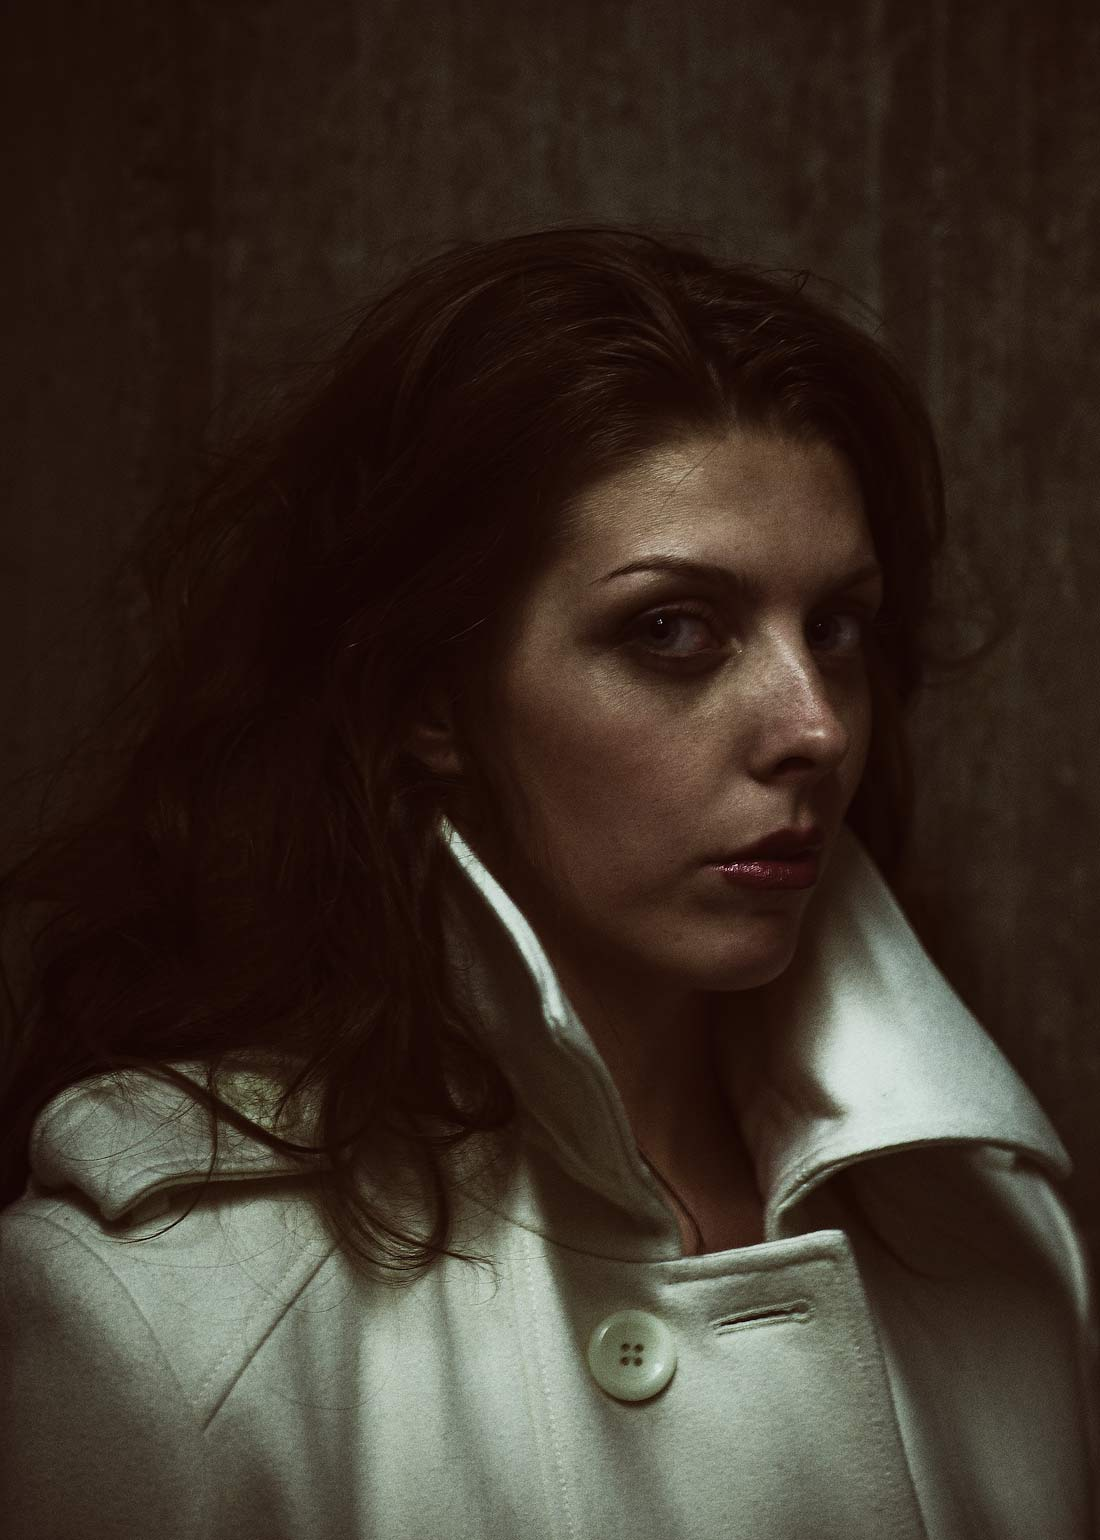 Portland commercial photography - dark portrait of woman in white coat